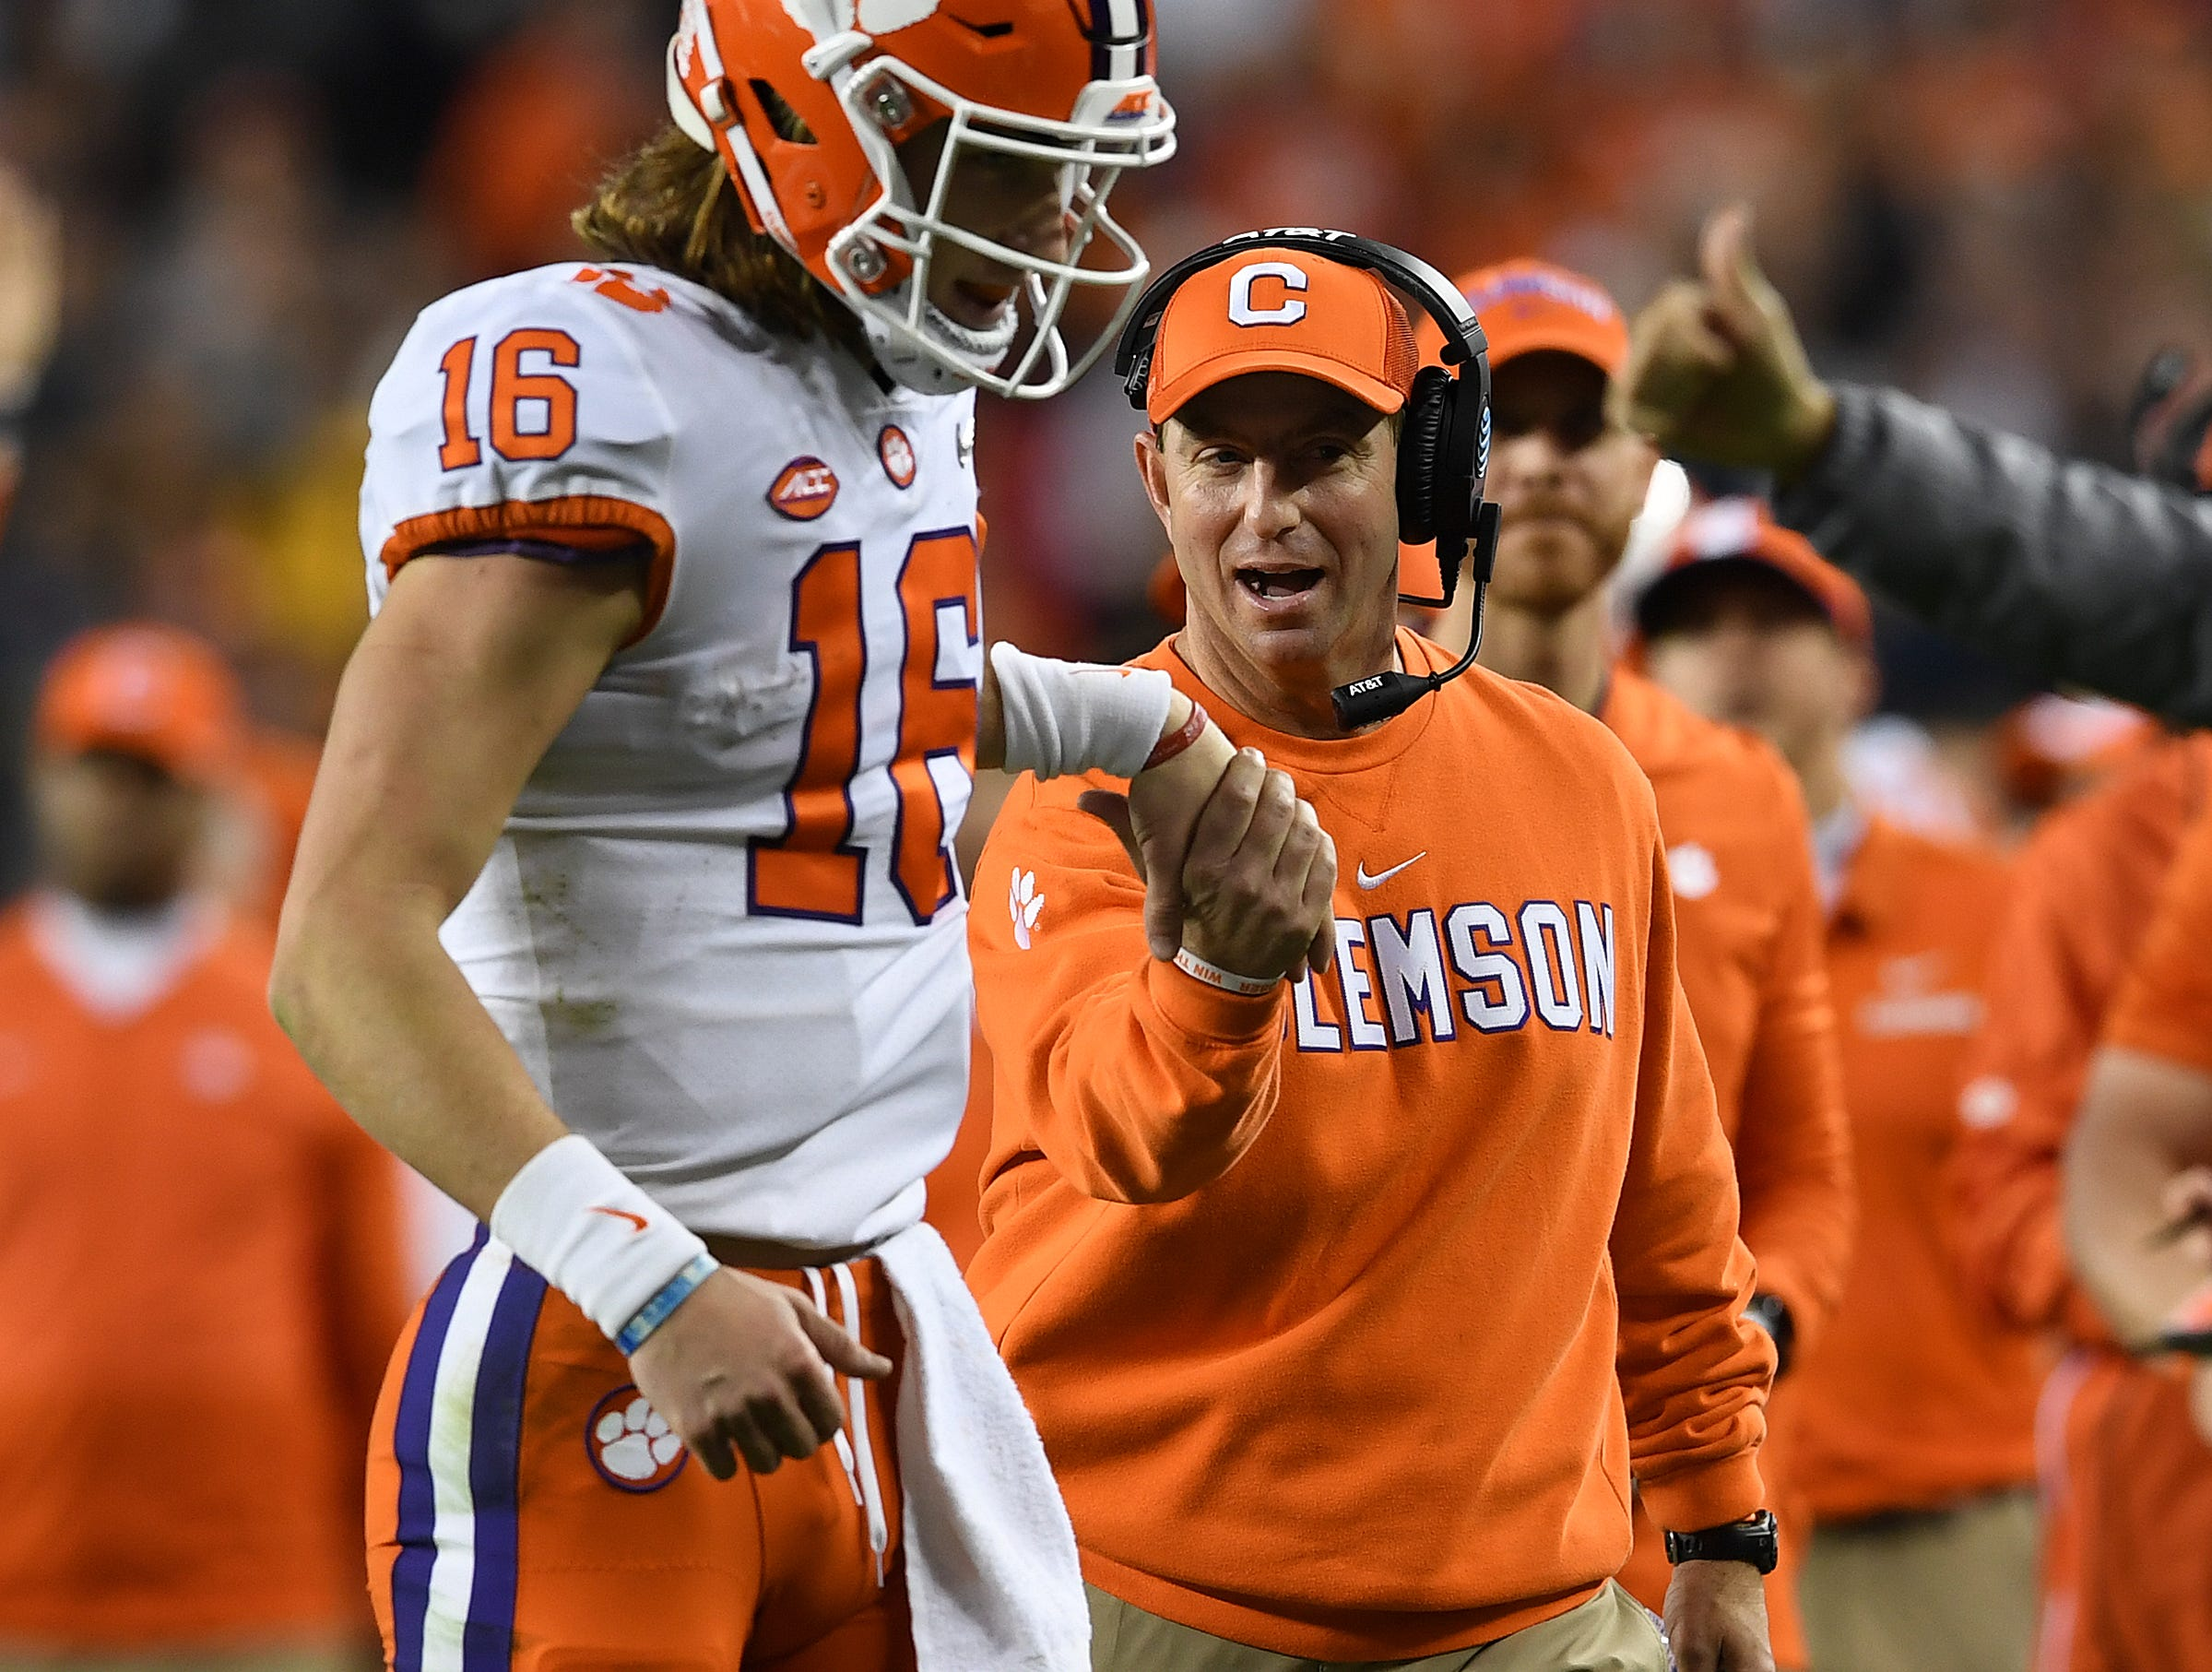 Clemson head coach Dabo Swinney congratulates quarterback Trevor Lawrence (16) after the Tigers scored against Alabama during the 3rd quarter of the College Football National Championship at Levi's Stadium in Santa Clara, CA Monday, January 7, 2019.